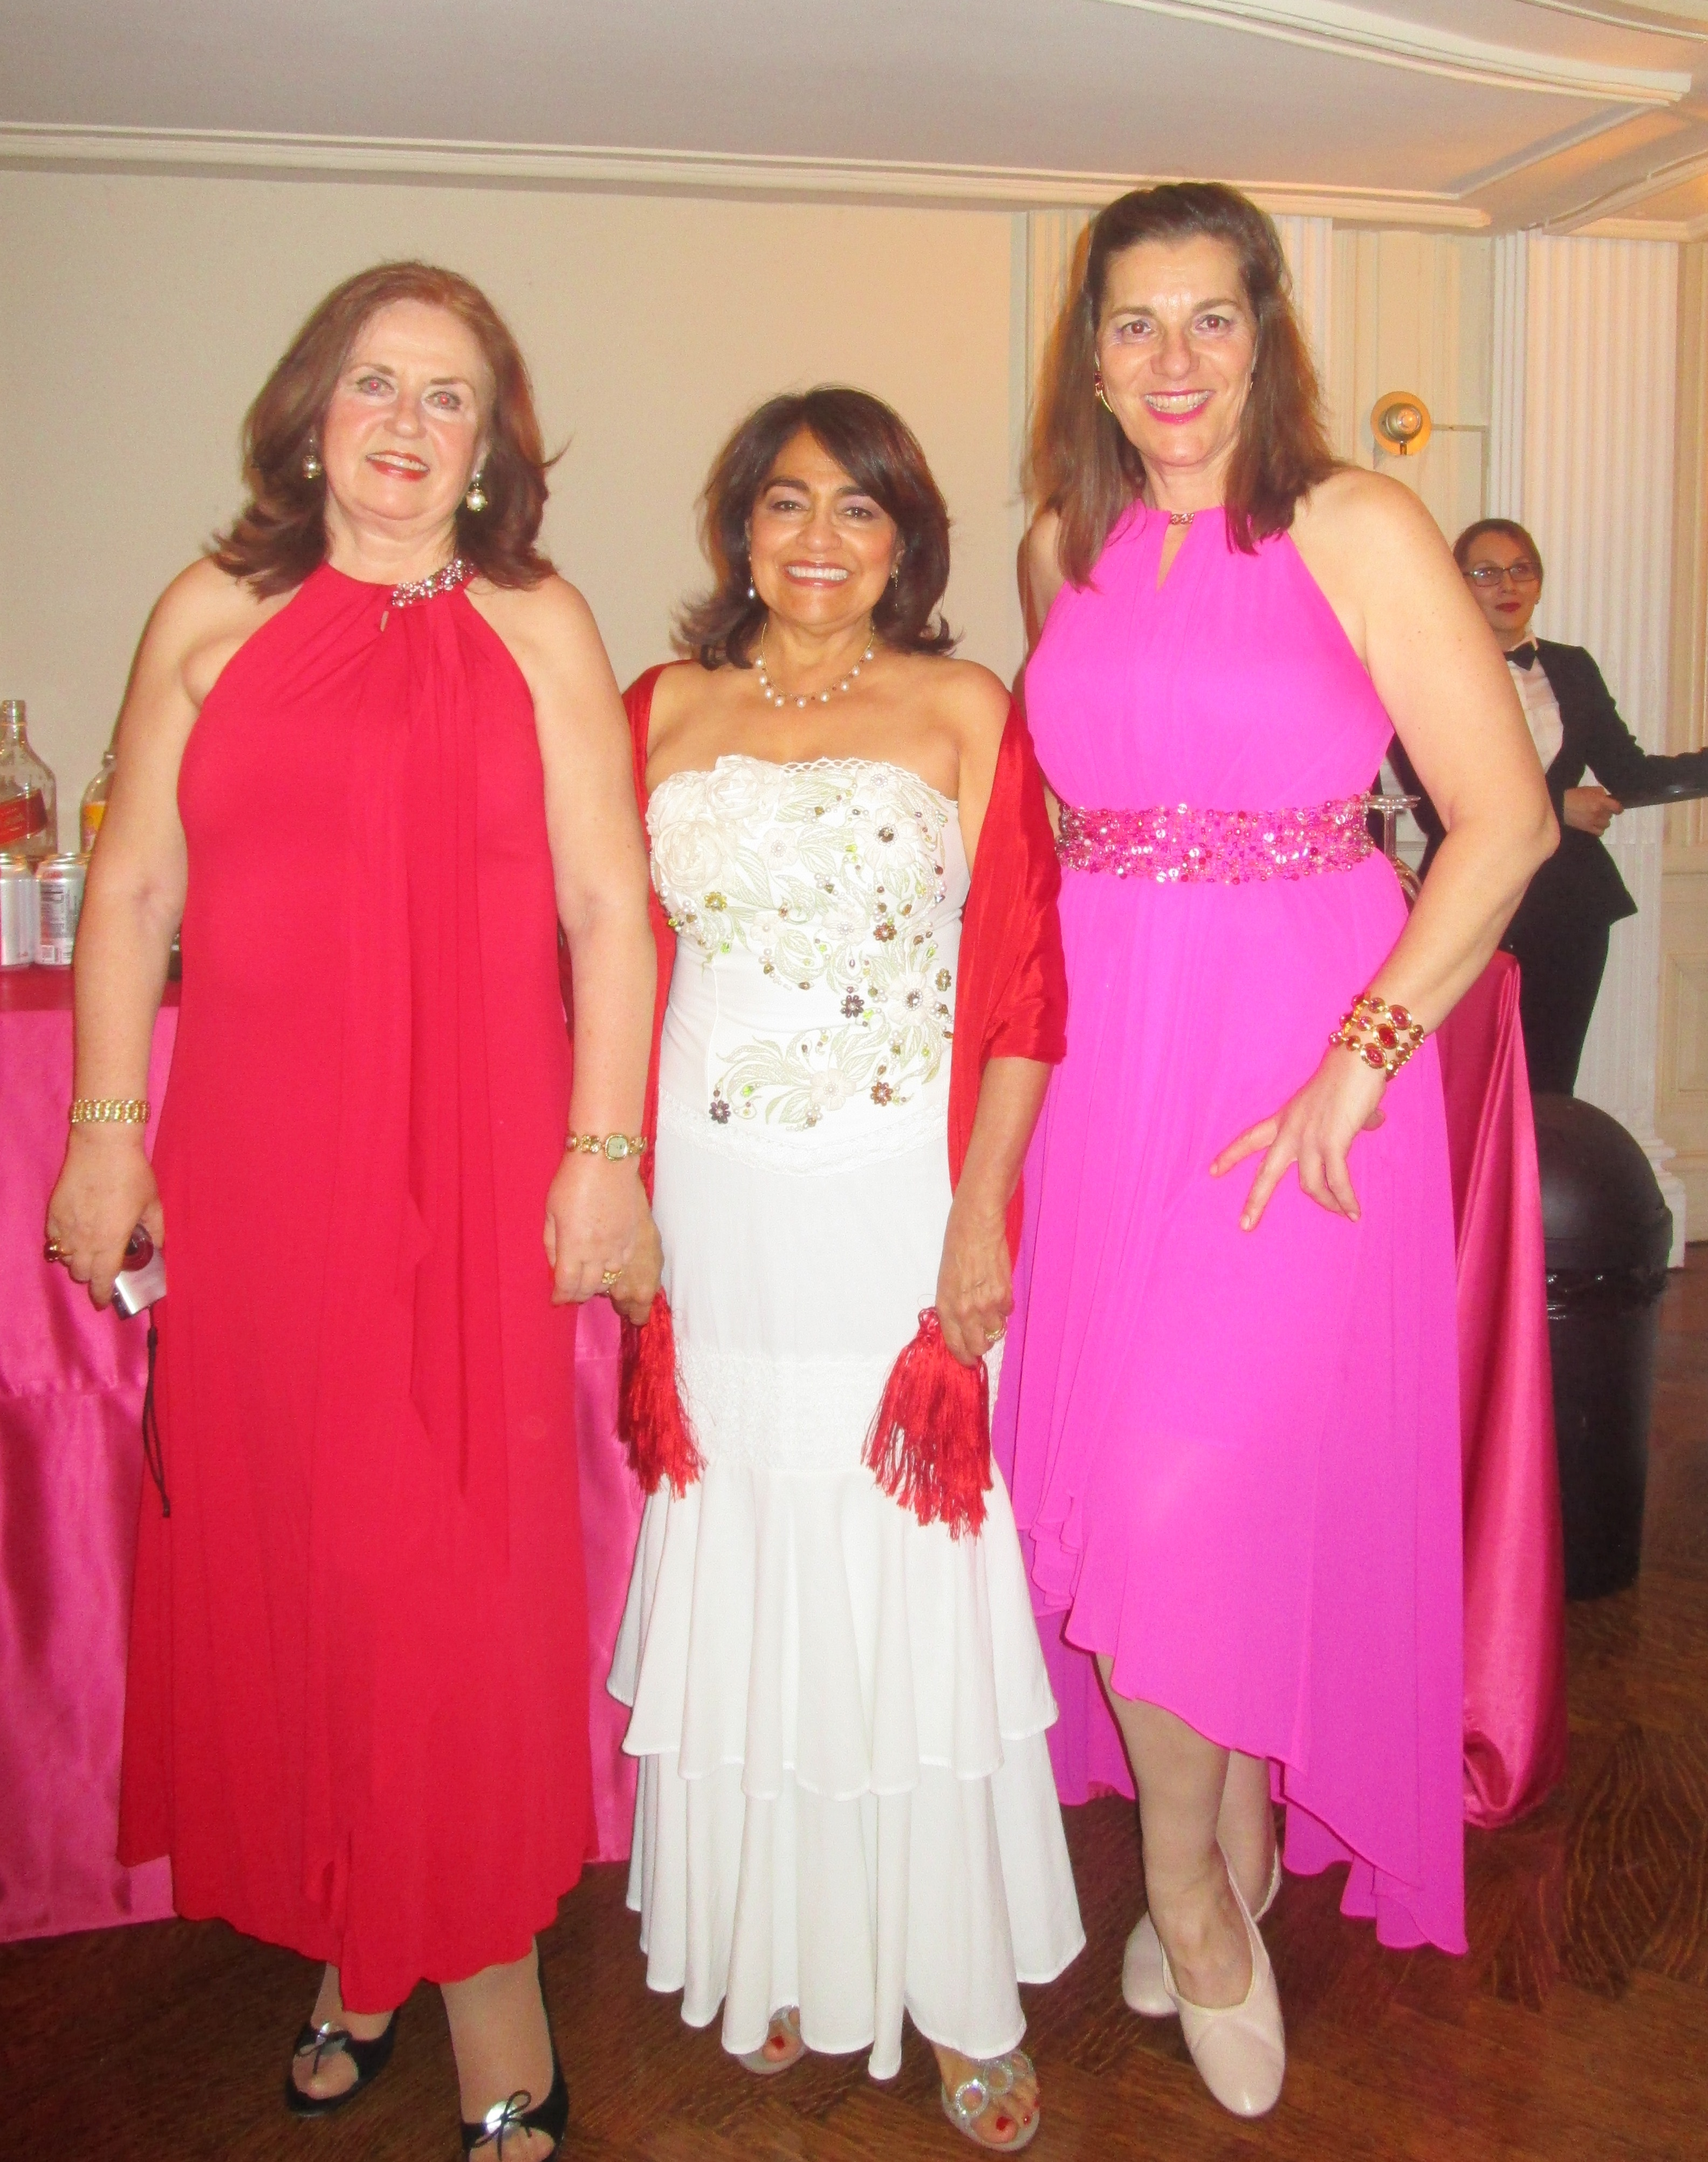 Valentine's Dance, Colombian Residence